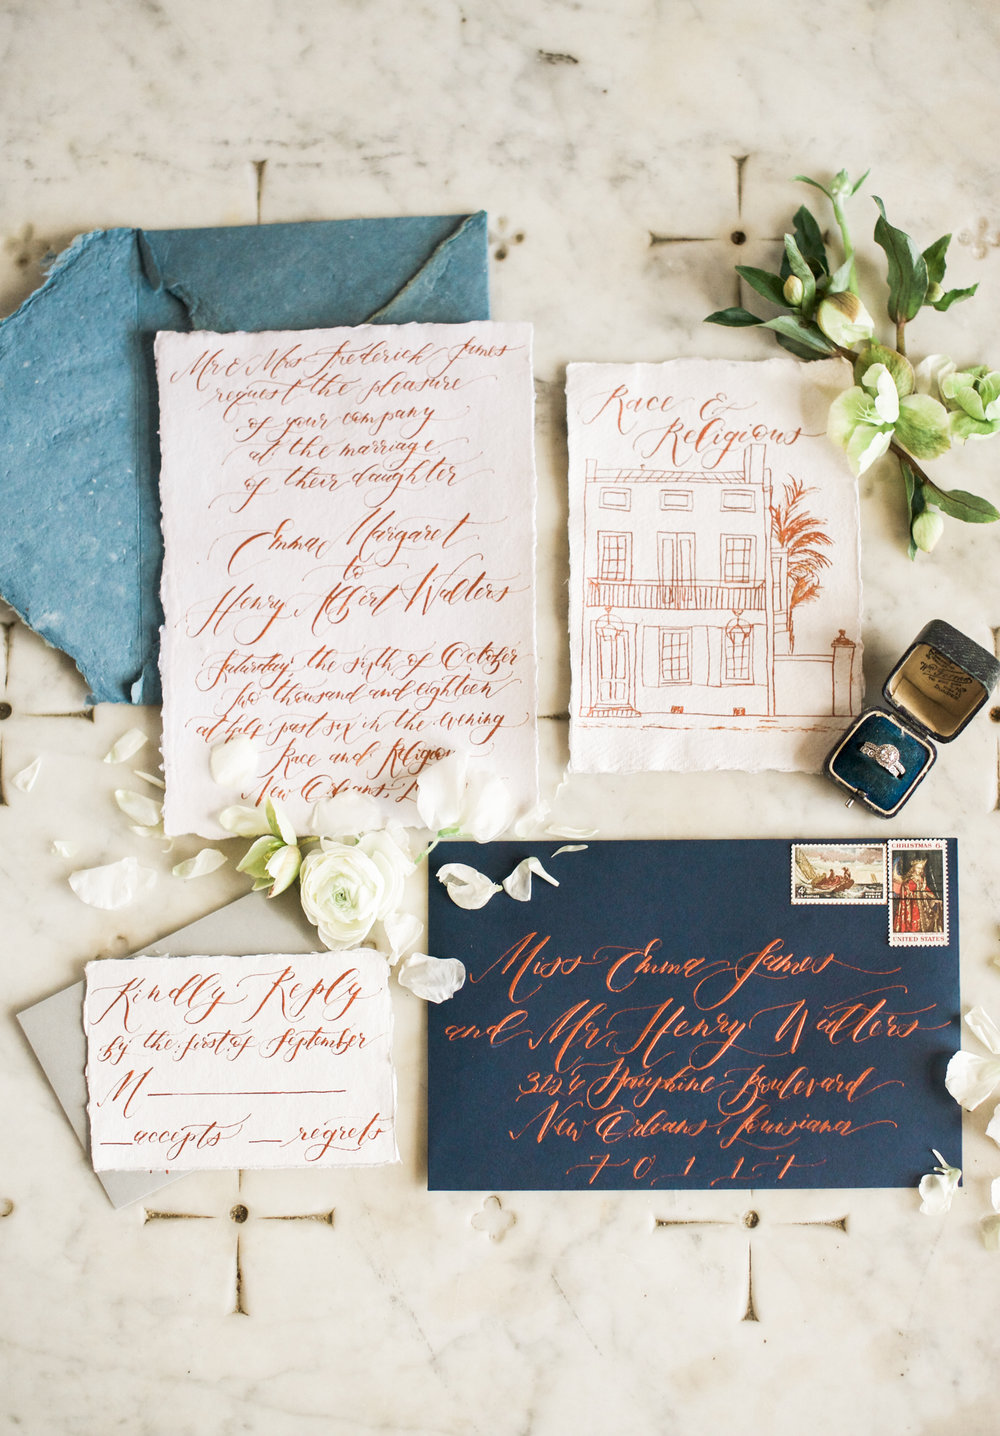 Race-and-religious-wedding-inspiration-shannon-skloss-photography-grit-and-gold-weddings-dalls-weddings-new-orleans-dallas-calligrapher-dallas-wedding-invitations-pretty-post-calligraphy.jpg